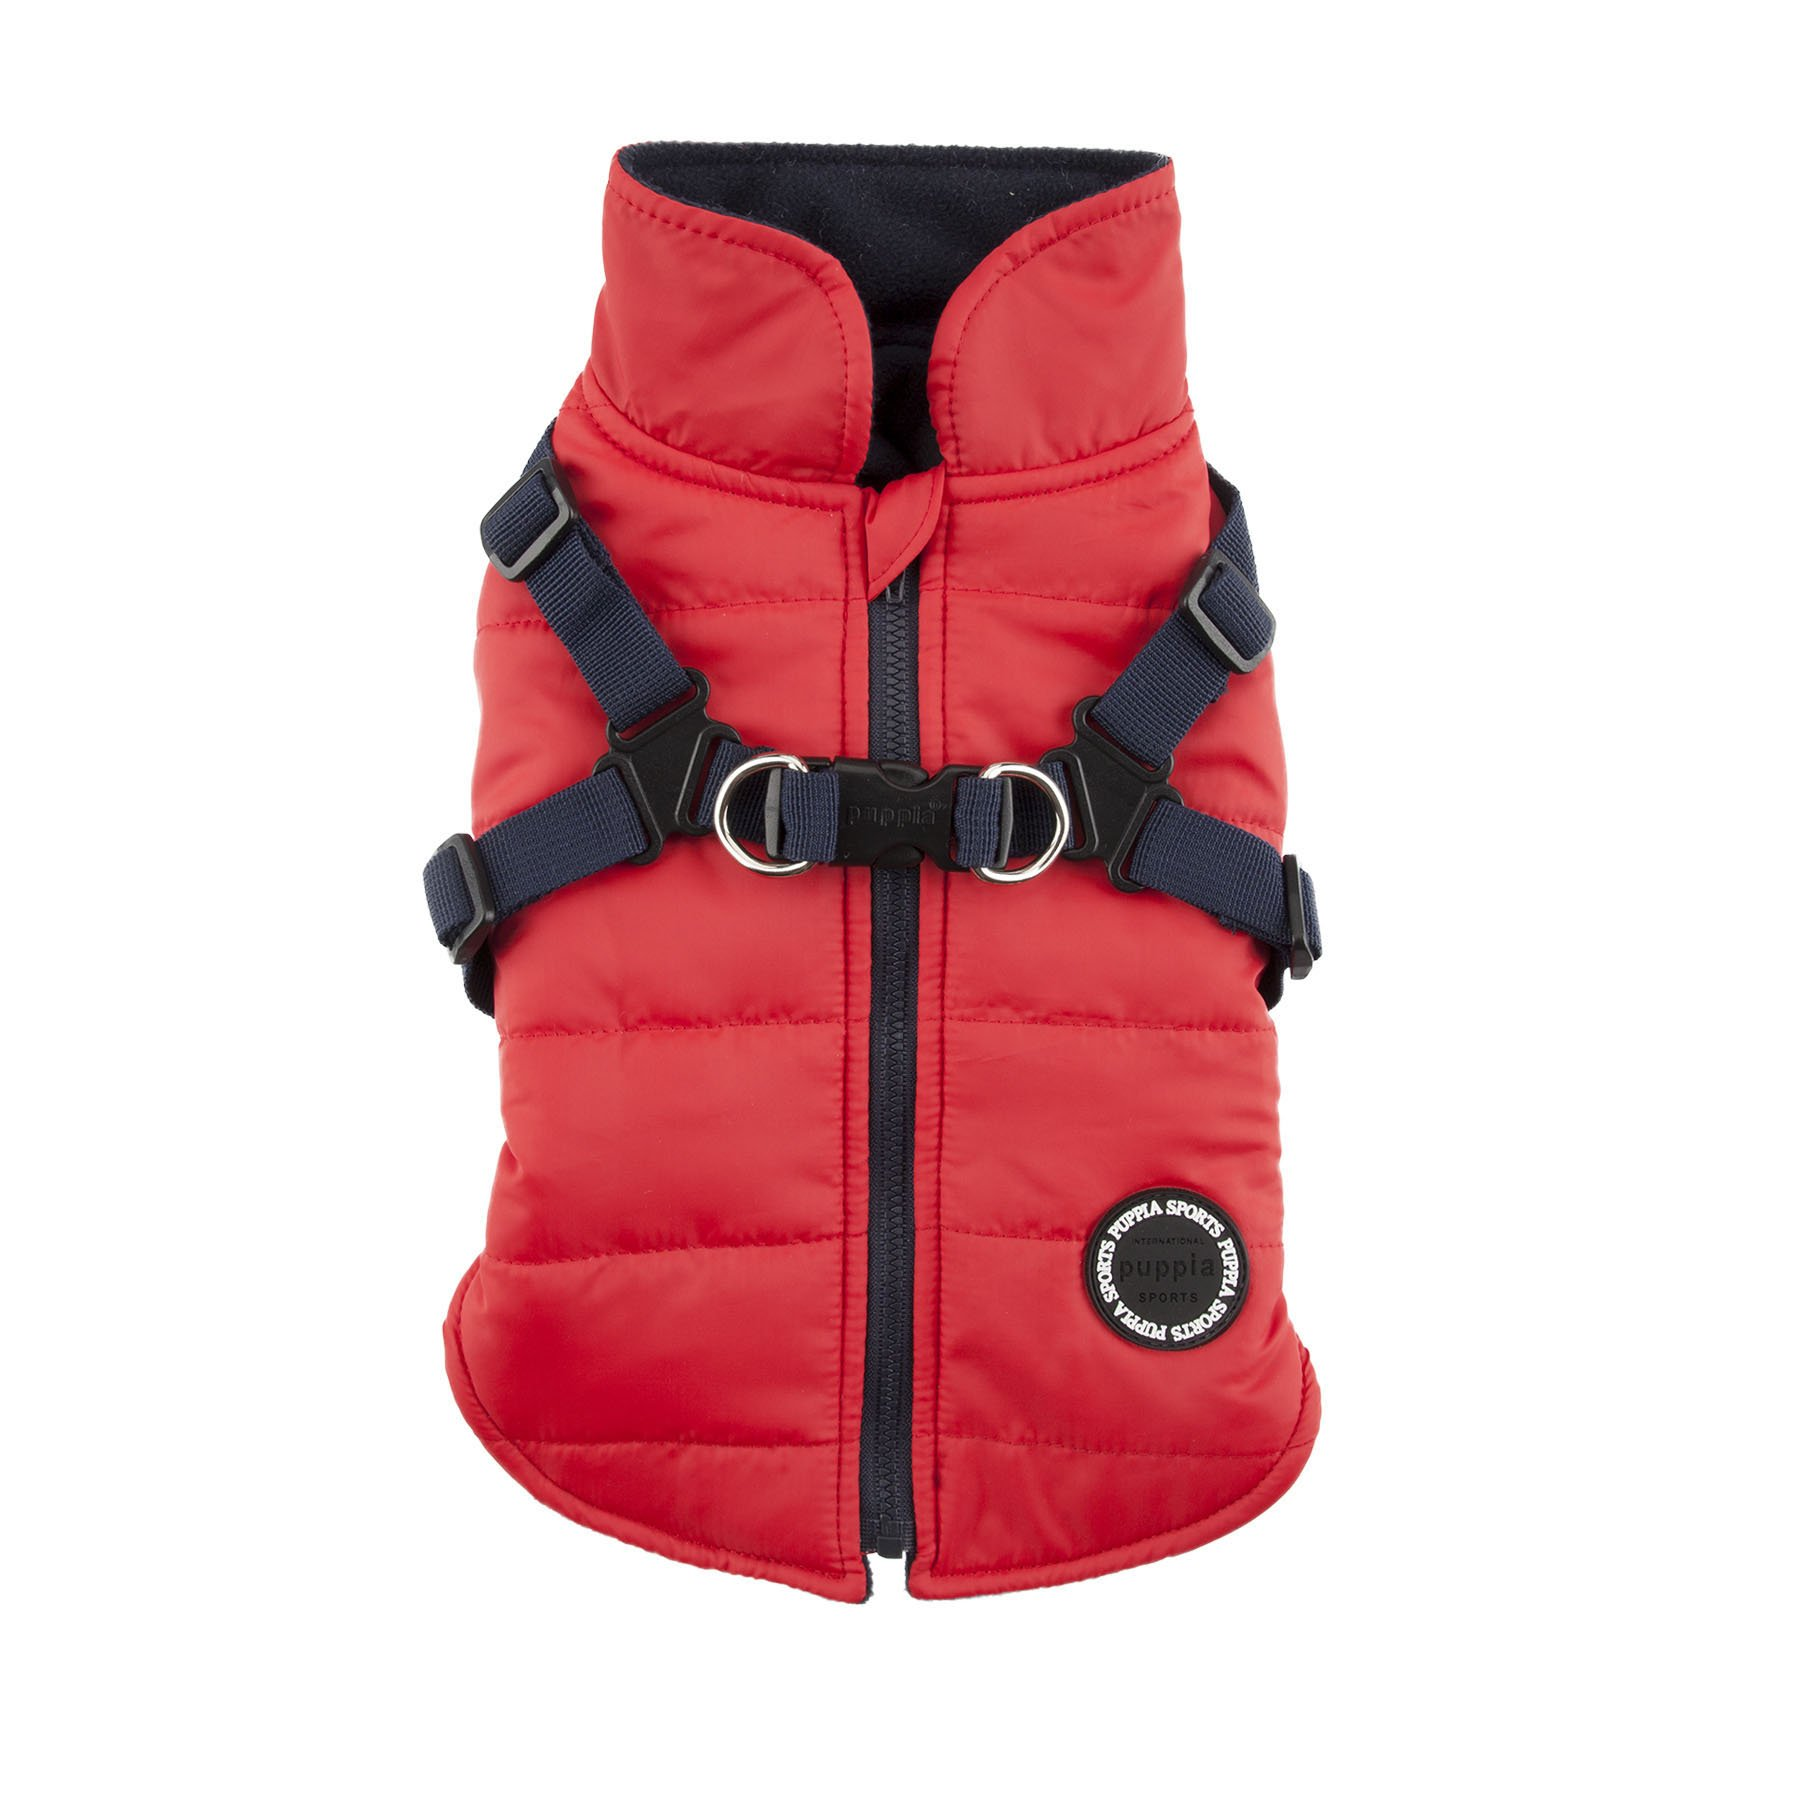 Puppia Authentic Mountaineer II Winter Vest, Large, Red by Puppia